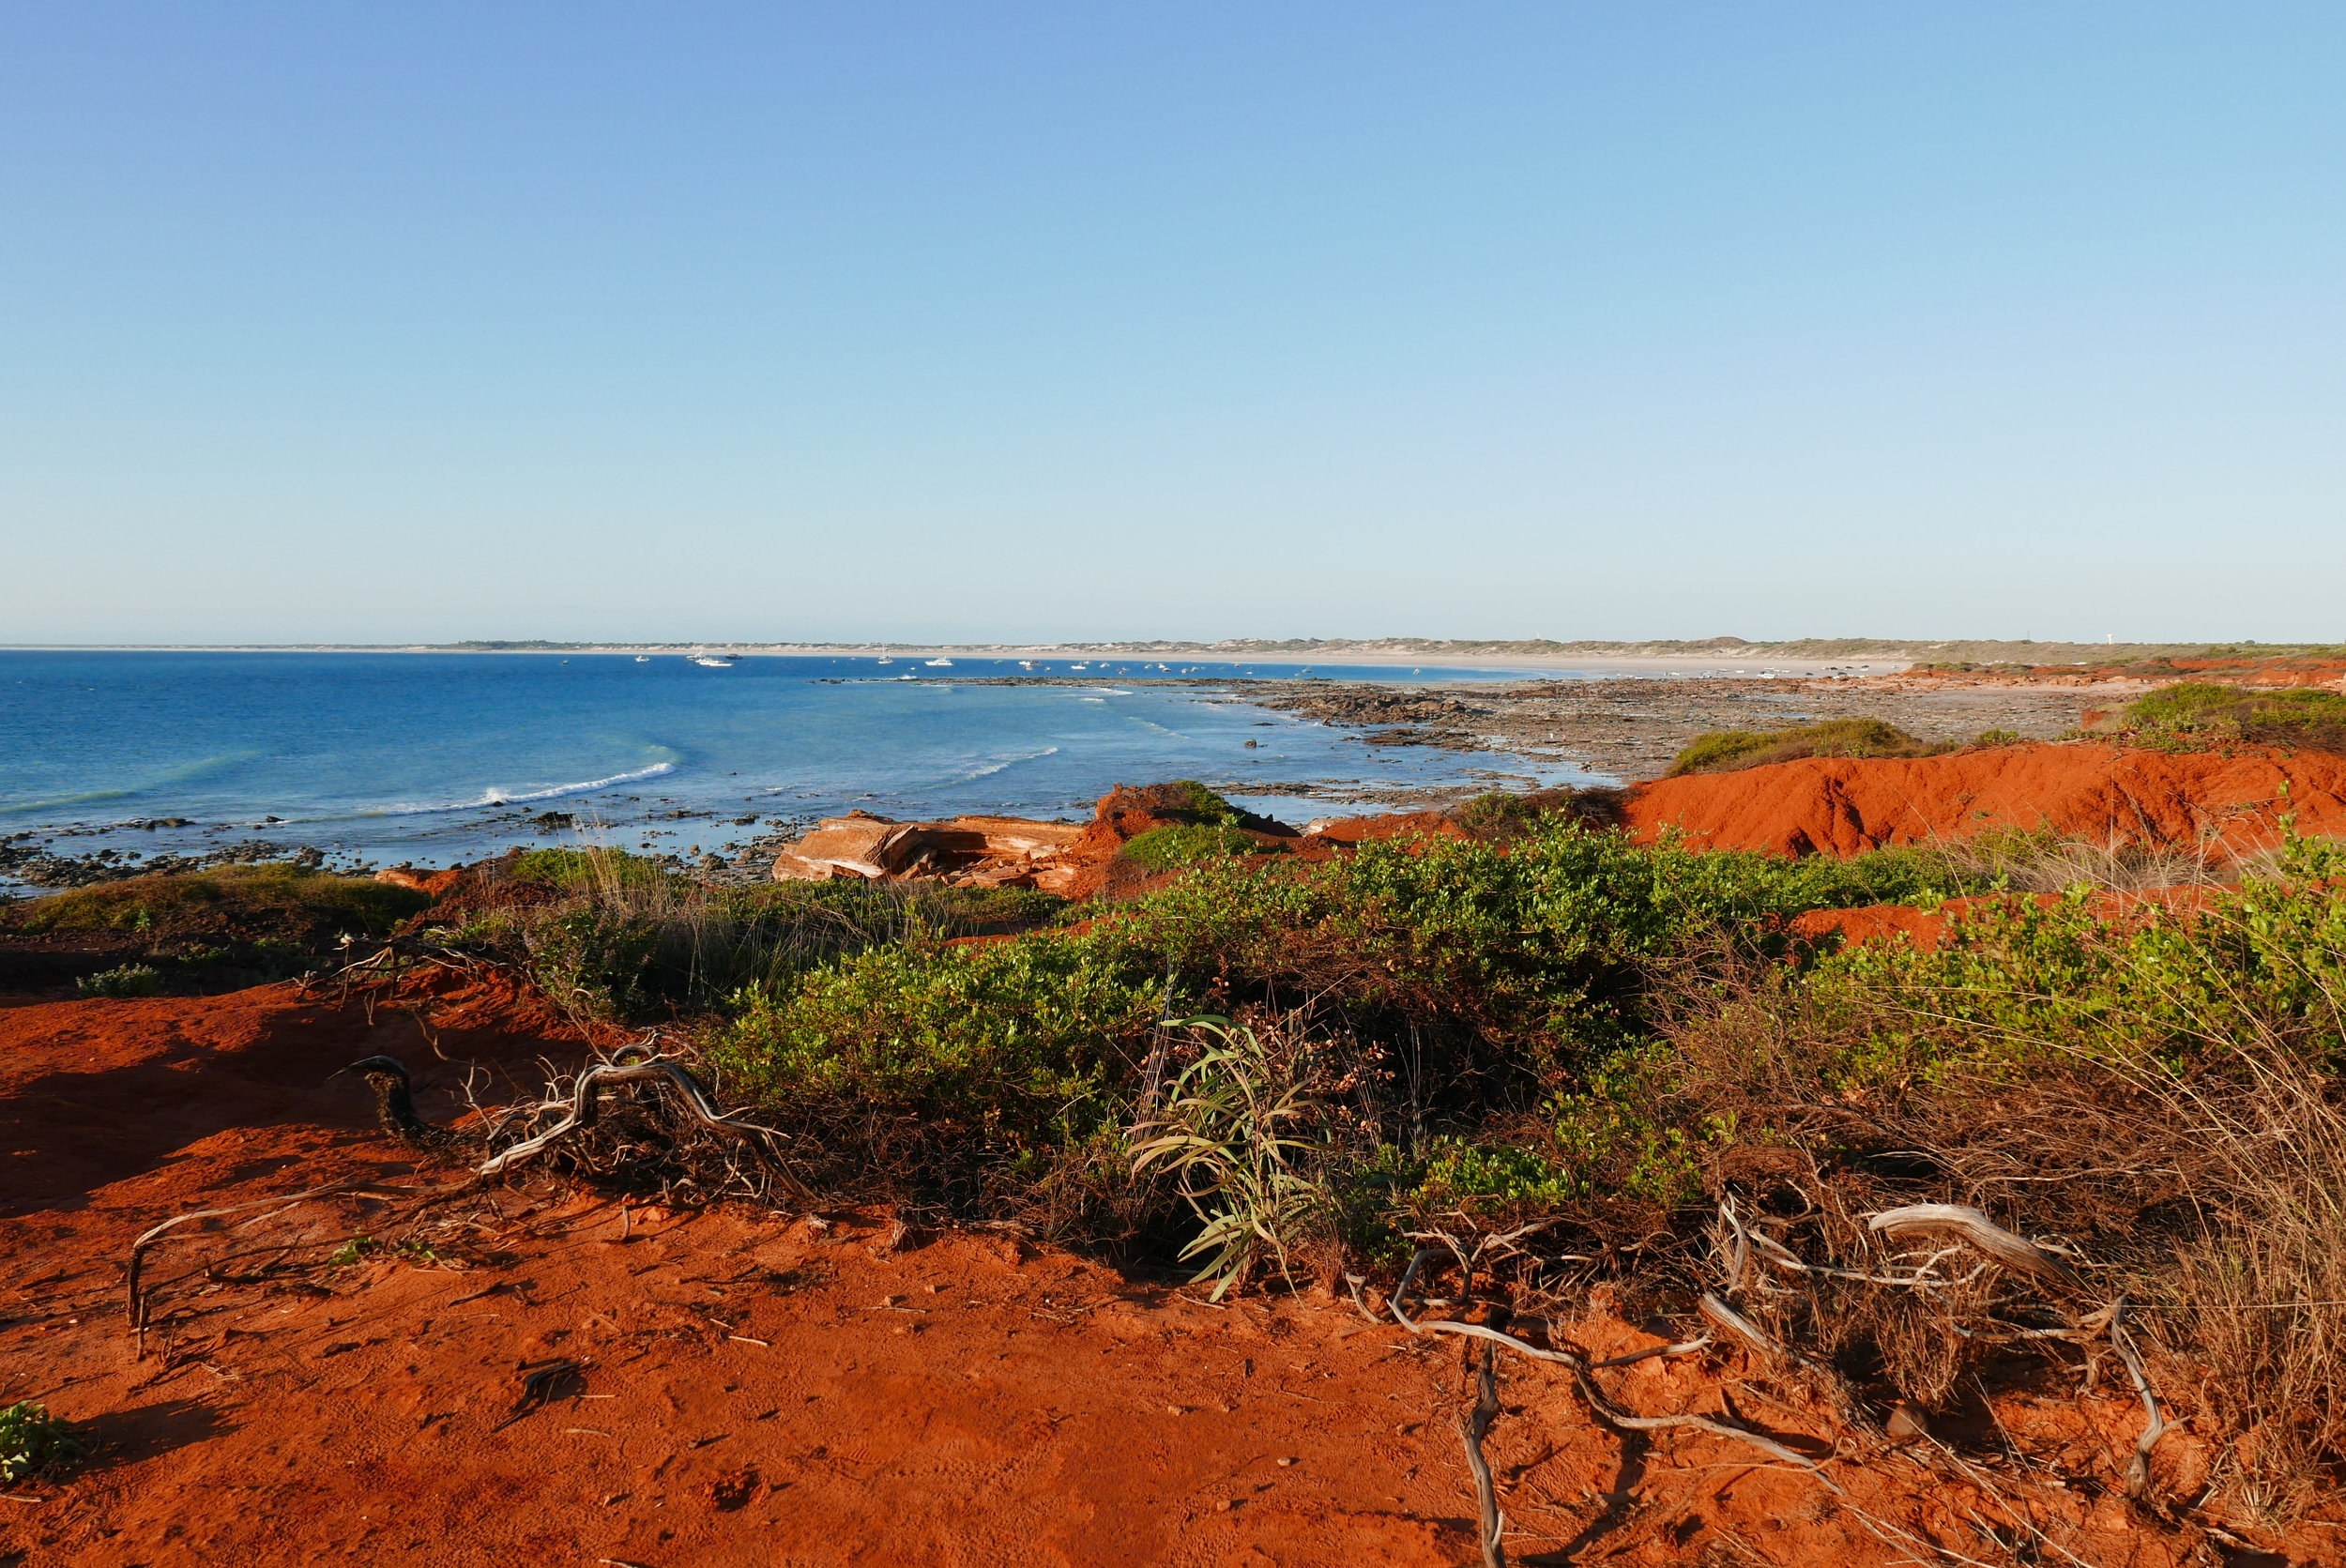 The red pindan soil in all its glory. I took this shot at Gantheaume Point looking back towards Cable Beach and Broome. The red soil is even more striking as the sun begins to set.